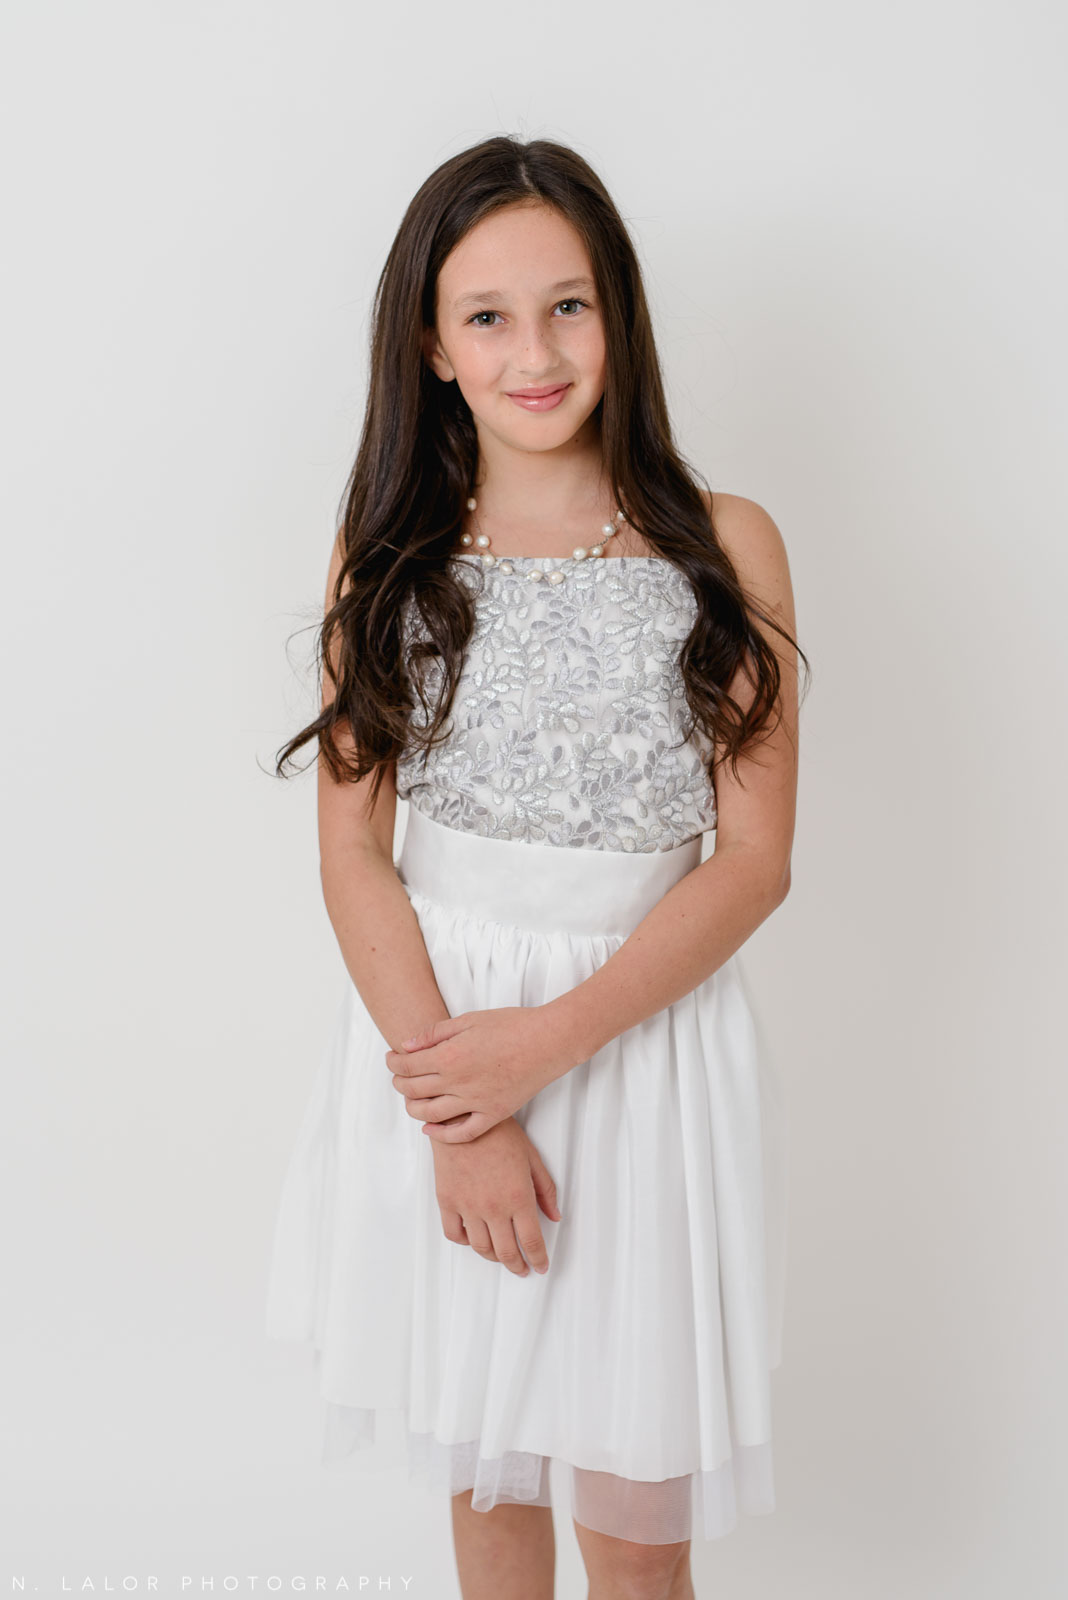 Sparkly white dress. Stella M'Lia tween fashion photoshoot with N. Lalor Photography in Greenwich, Connecticut.